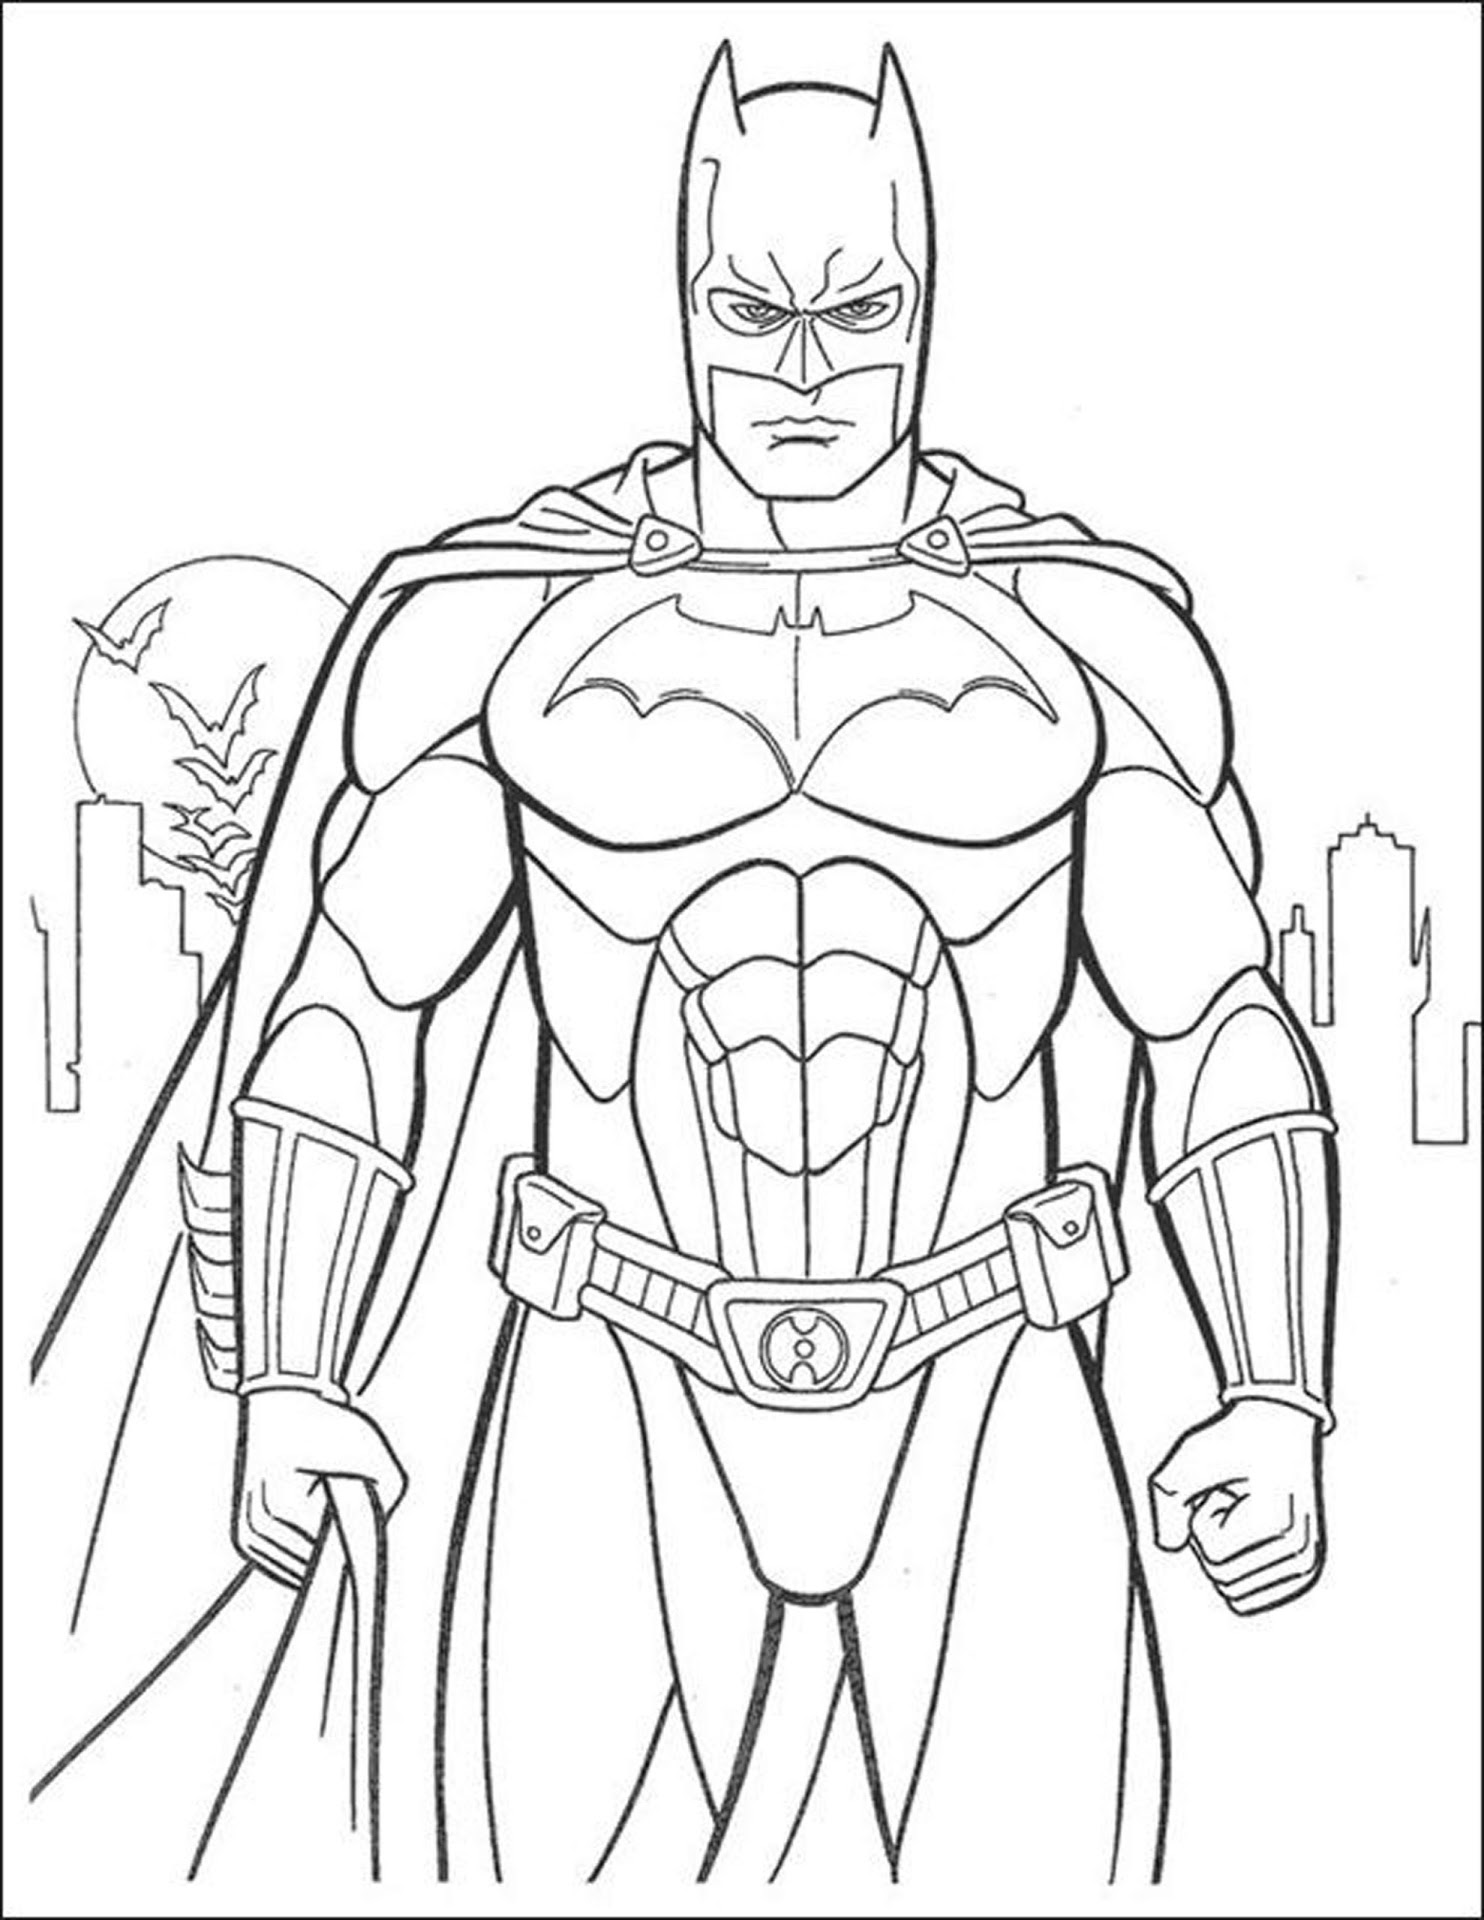 batman coloring sheets printable batman coloring pages print and colorcom printable batman coloring sheets